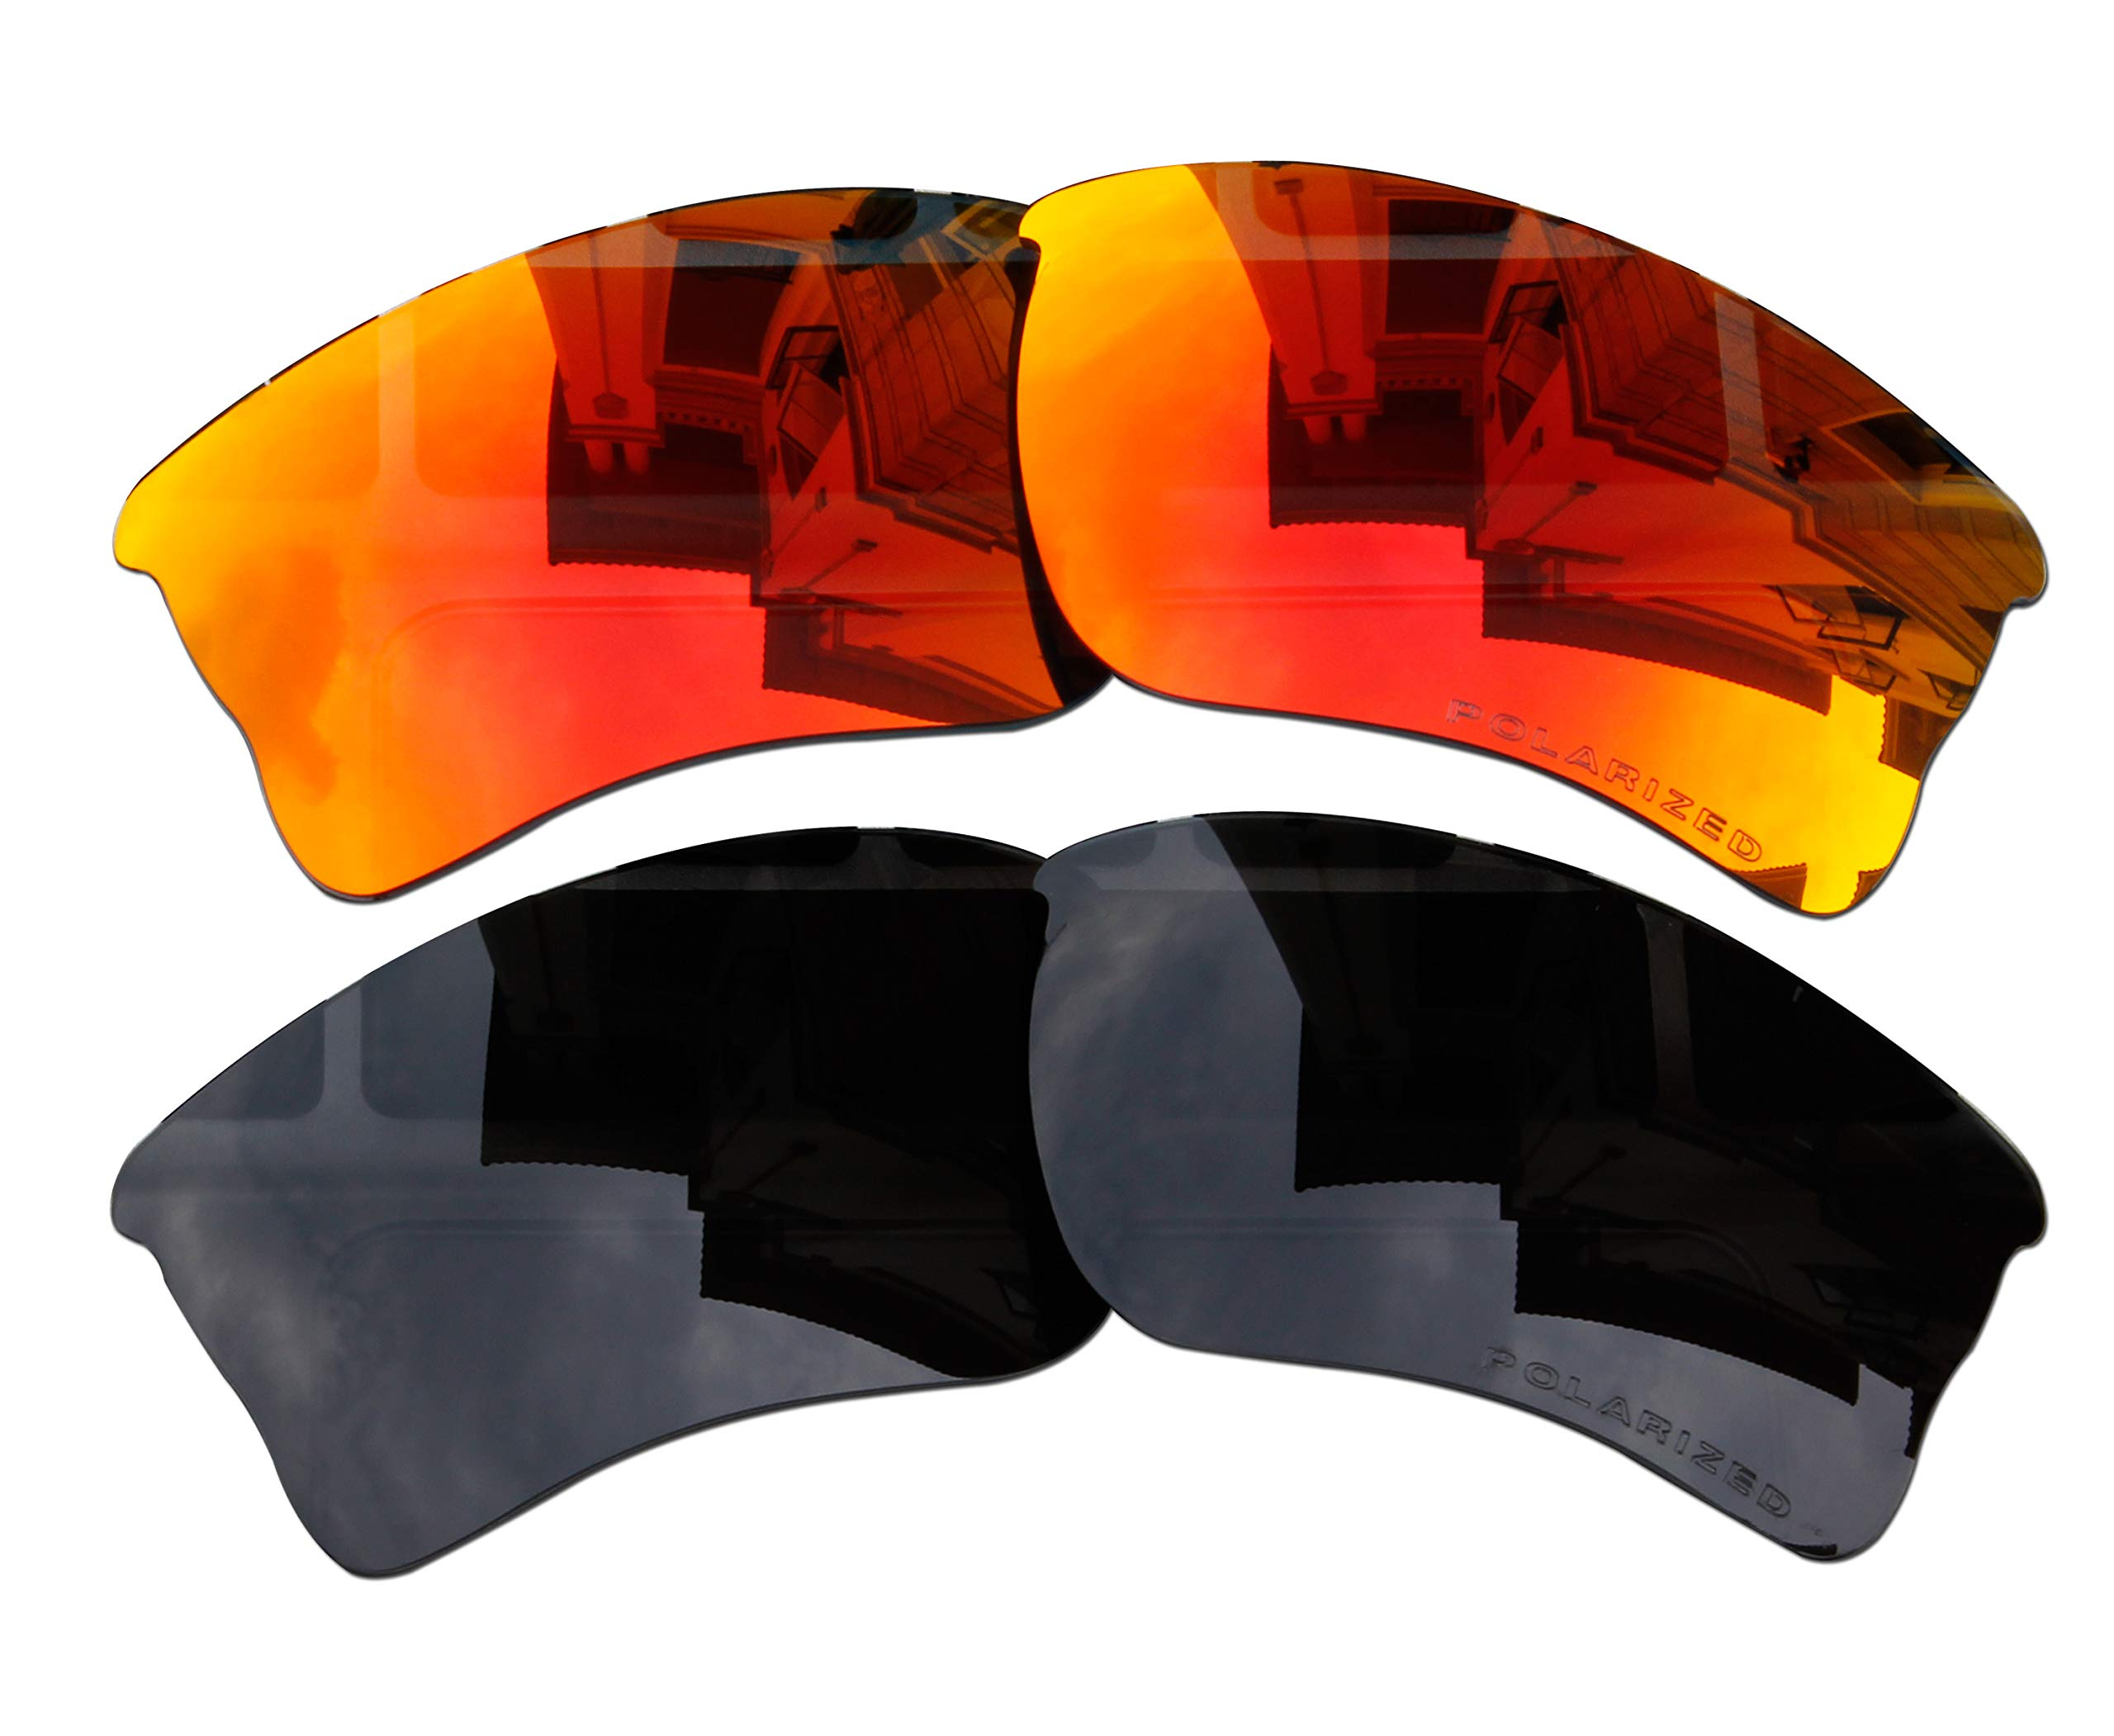 2 Pairs Polarized Lenses Replacement Red & Black for Oakley Quarter Jacket Sunglasses